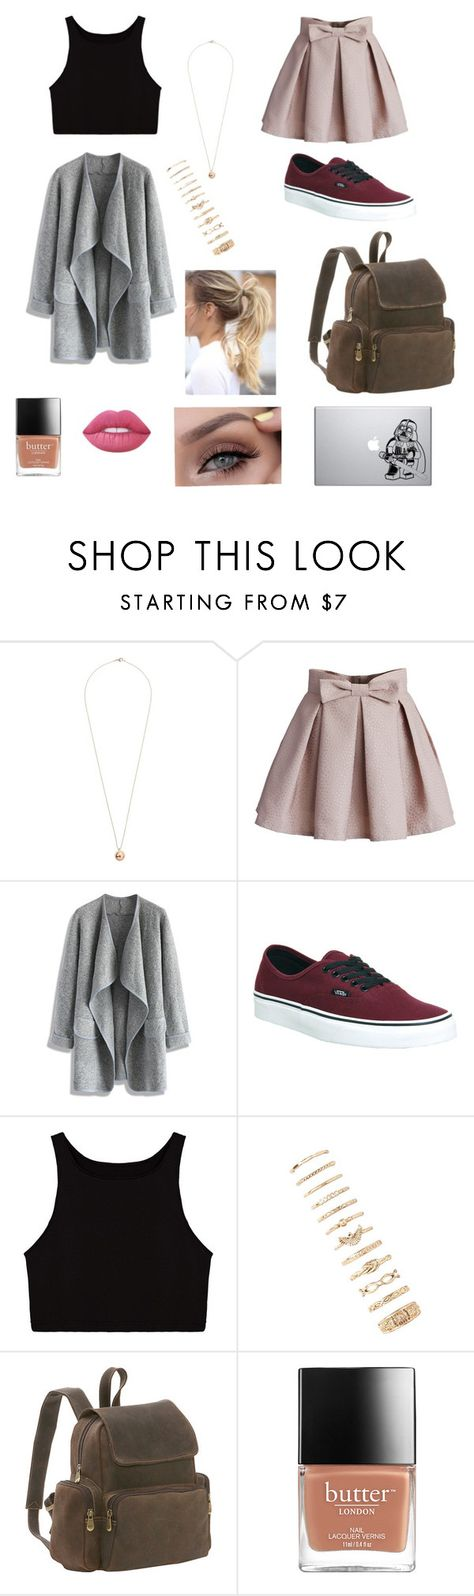 """Untitled #83"" by heresnana on Polyvore featuring Dorothy Perkins, Chicwish, Vans, Forever 21, Le Donne and Lime Crime"